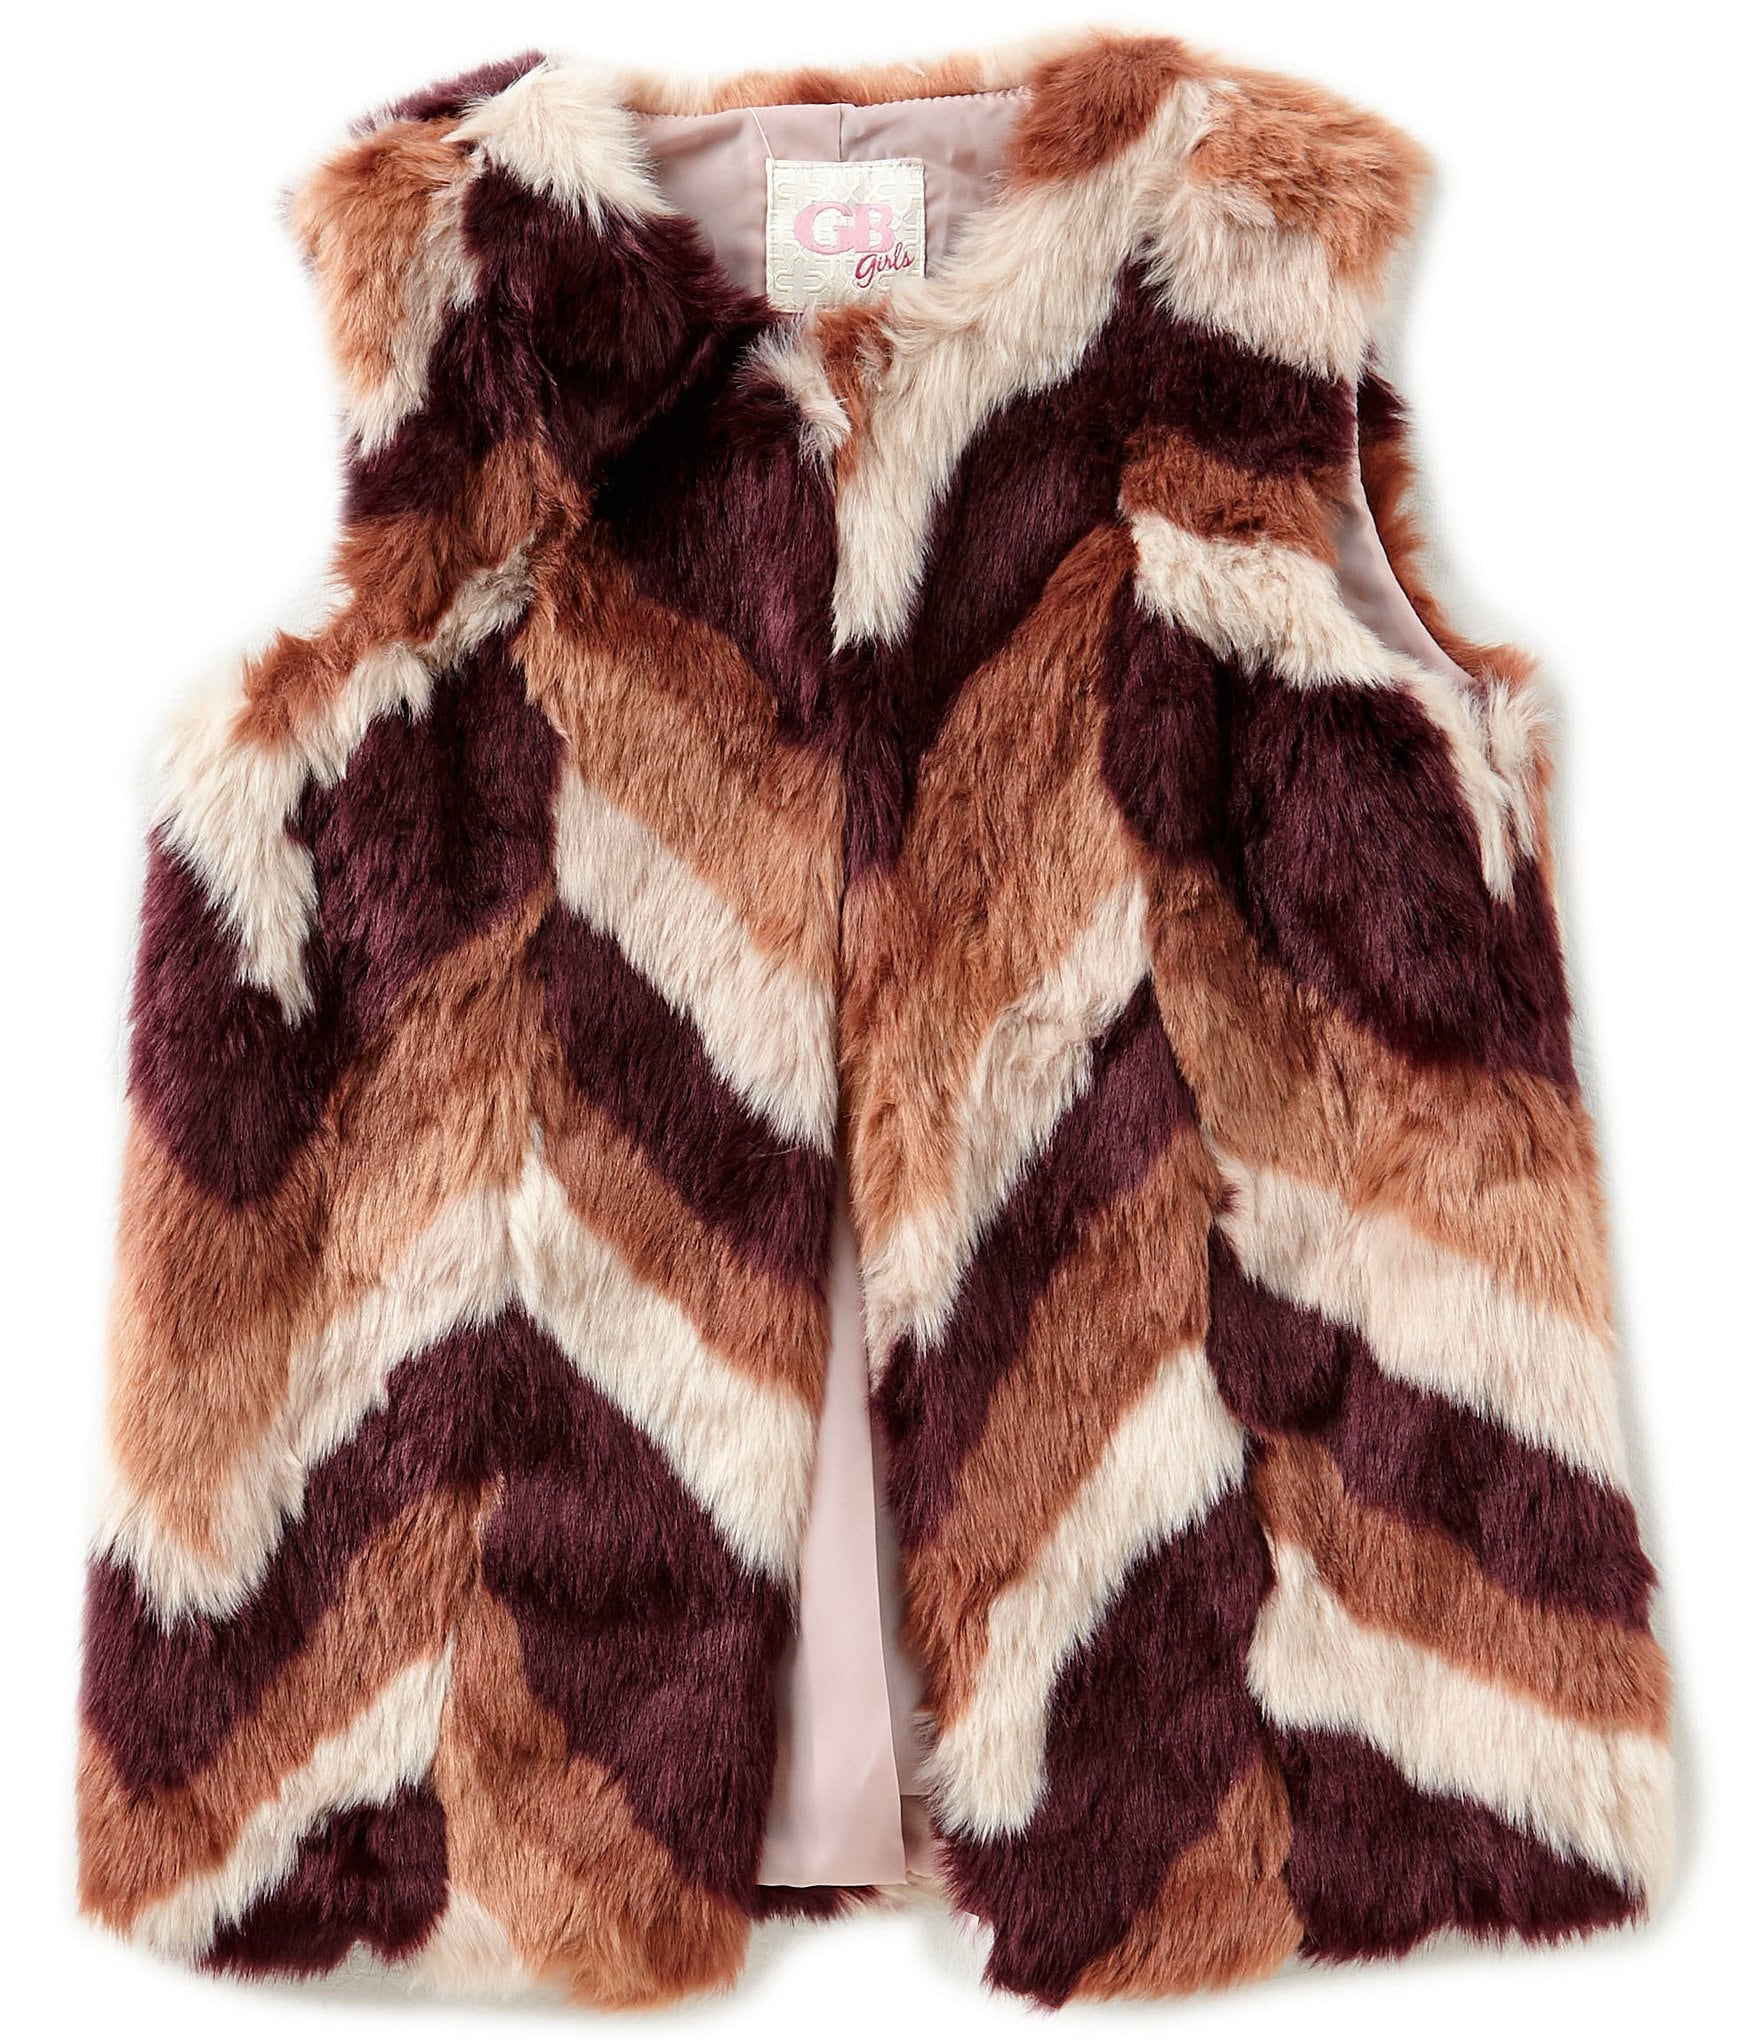 Explore luxury faux fur coats, jackets, clothing and accessories for women, men and kids plus throws, pillows and rugs at Donna Salyers Fabulous Furs.